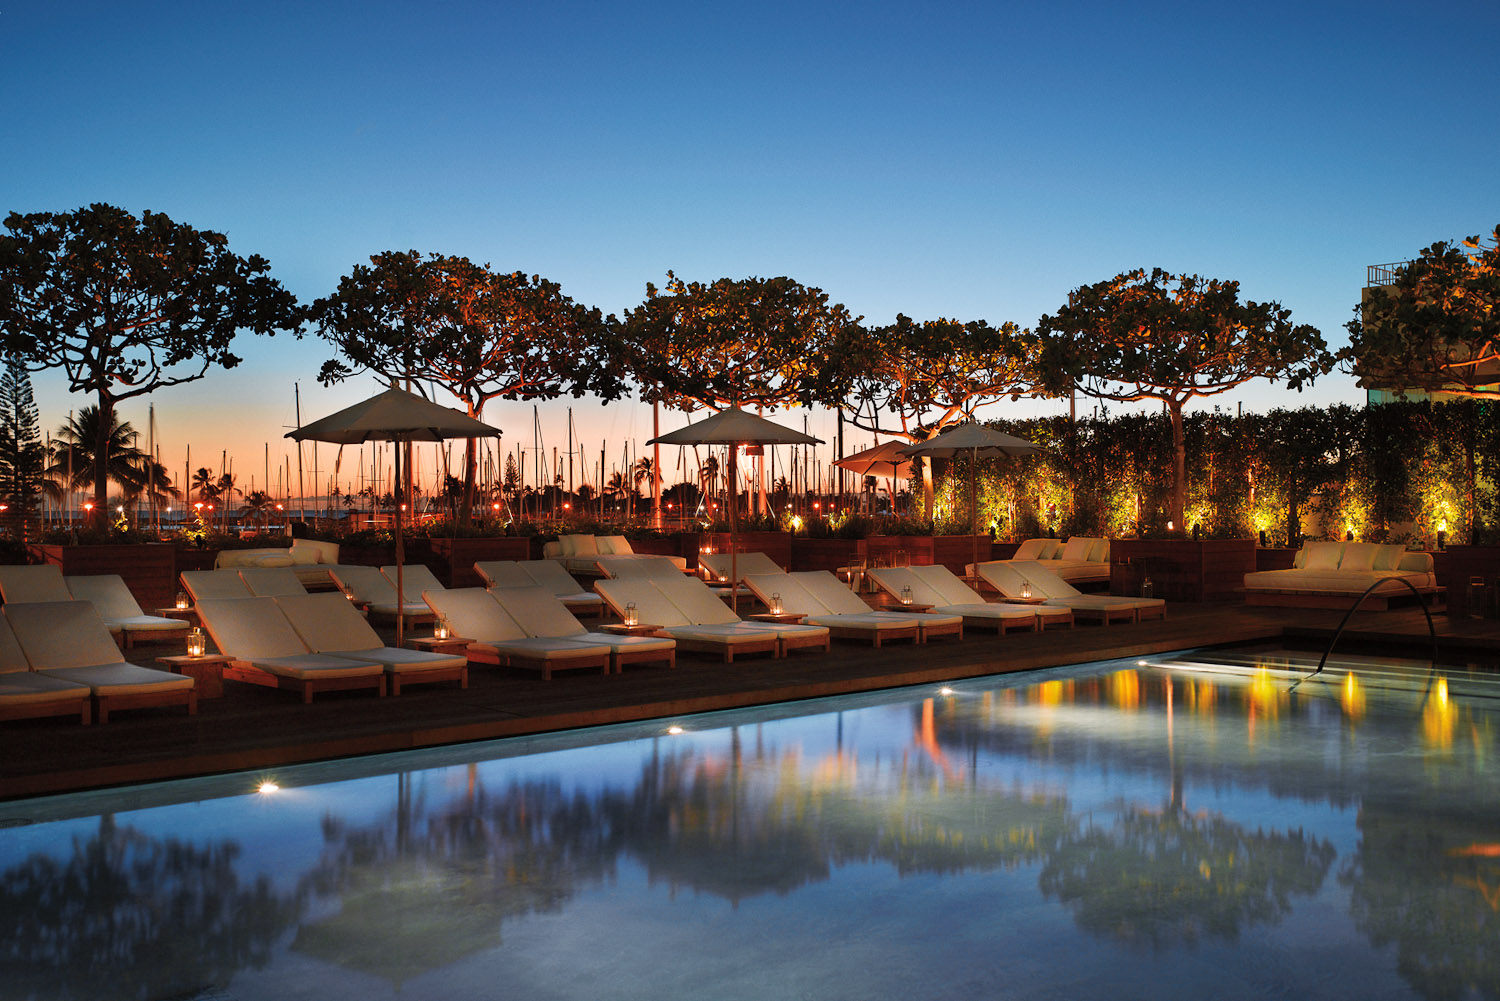 The Sunrise Pool is a fabulous space for families to splash about at The Modern Honolulu.